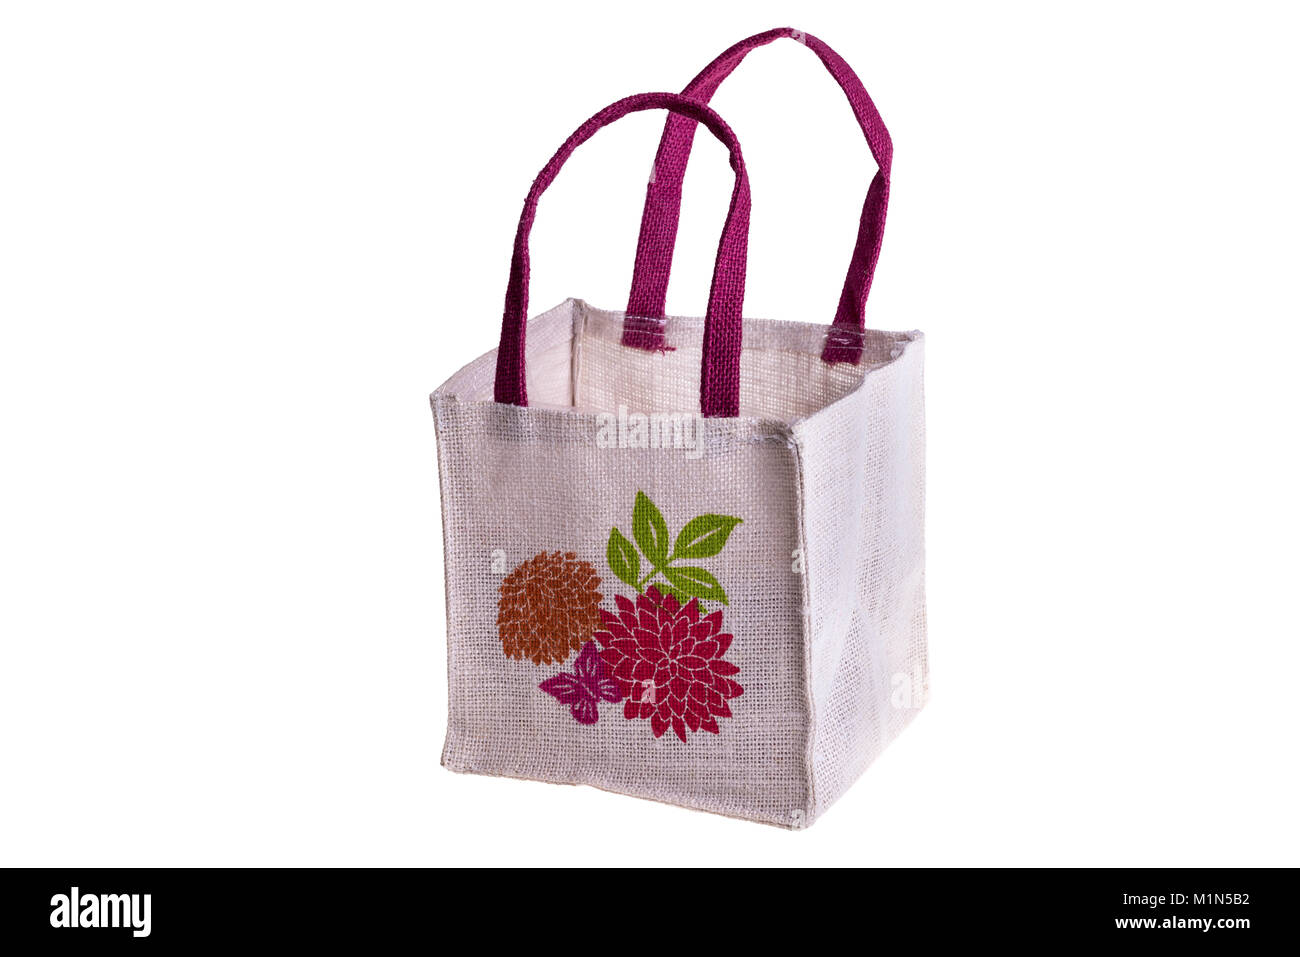 Empty hessian shopping bag, isolated on white. With floral decoration. - Stock Image